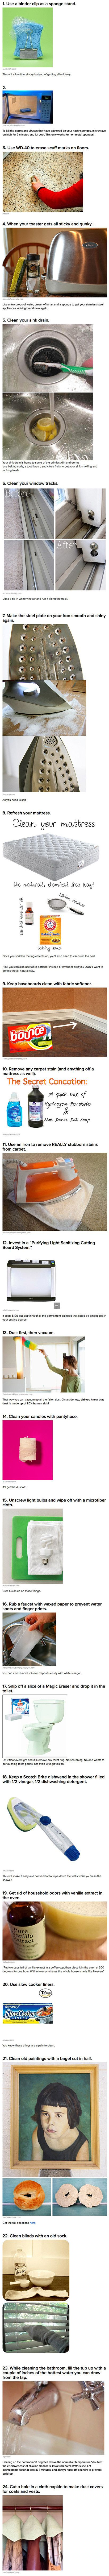 Here are some extremely useful cleaning life hacks to help geeks get organized this weekend.